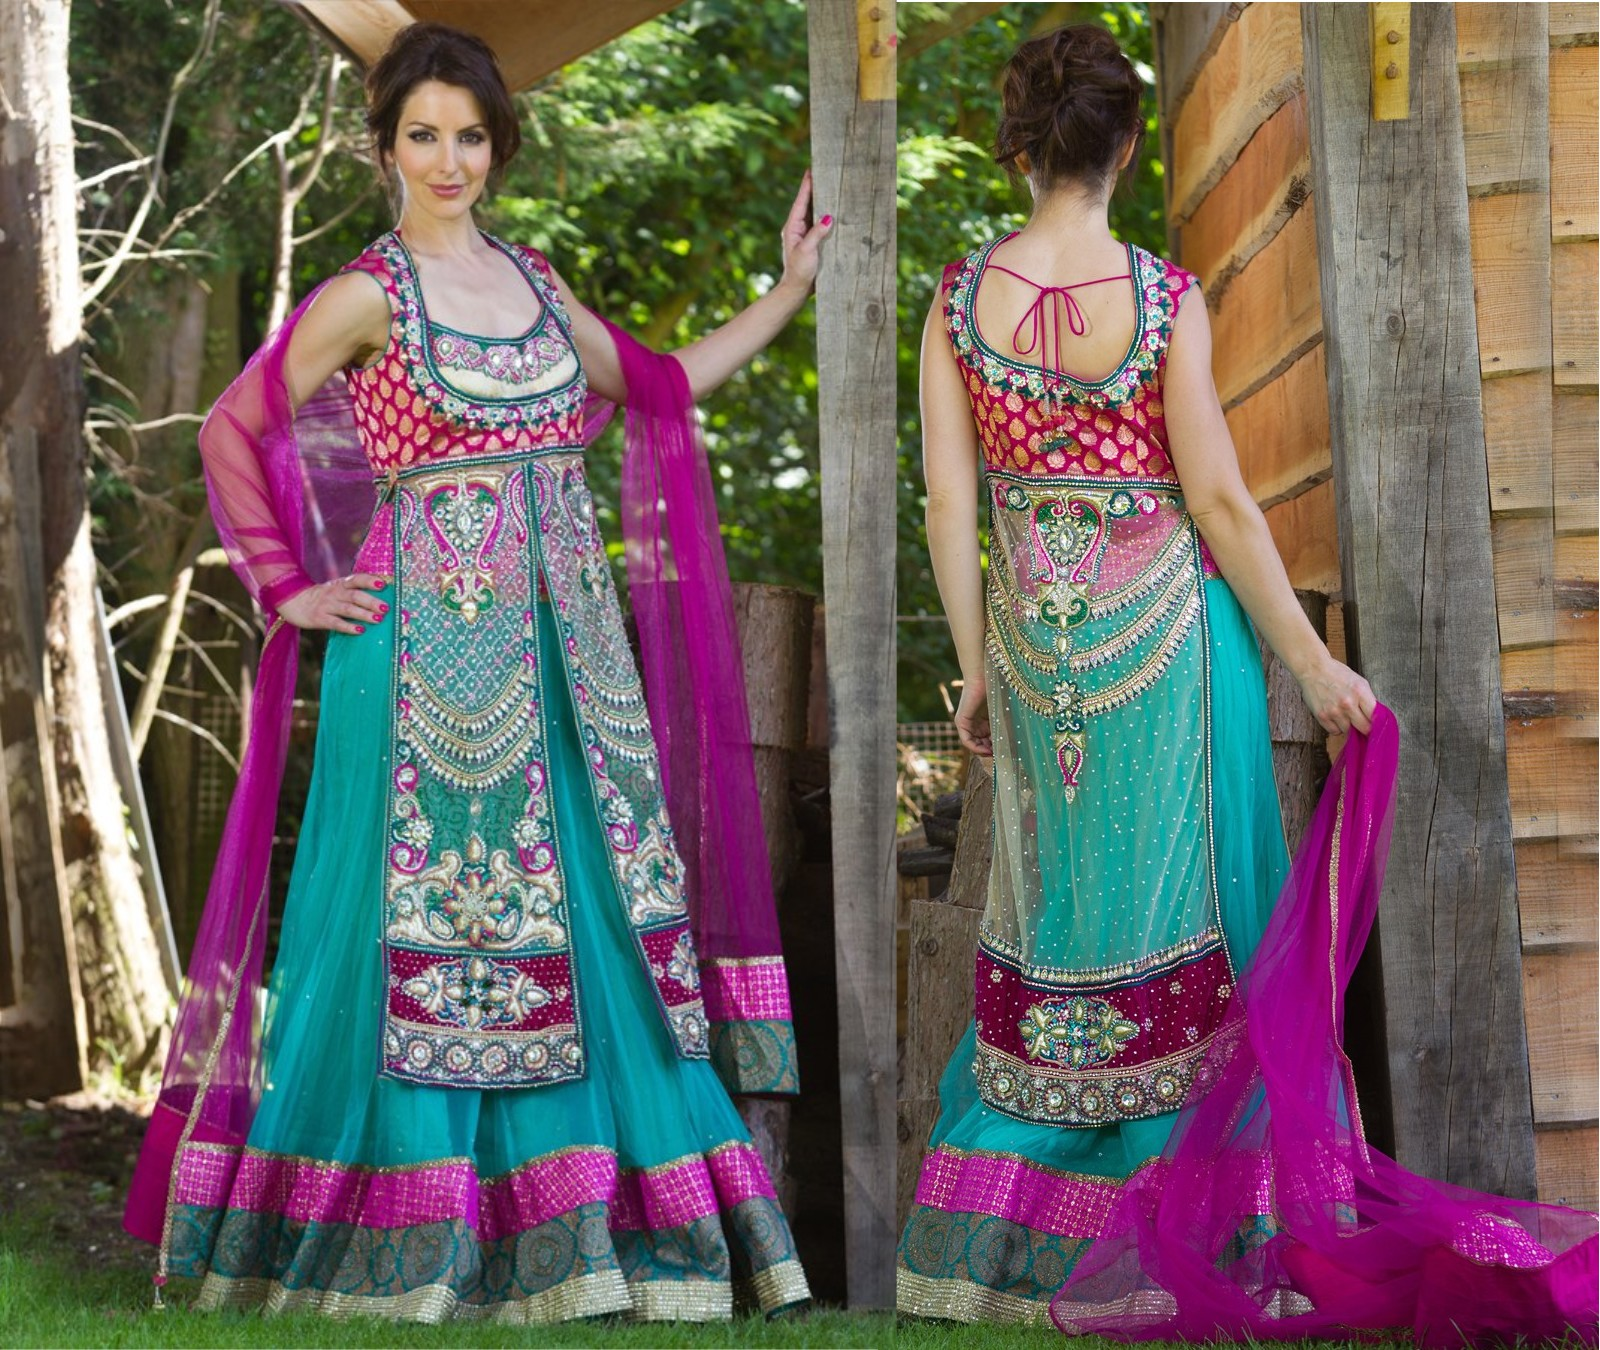 ... Shirt Dresses Designs 2012-2013 | Indian Double Shirts Frock Styles